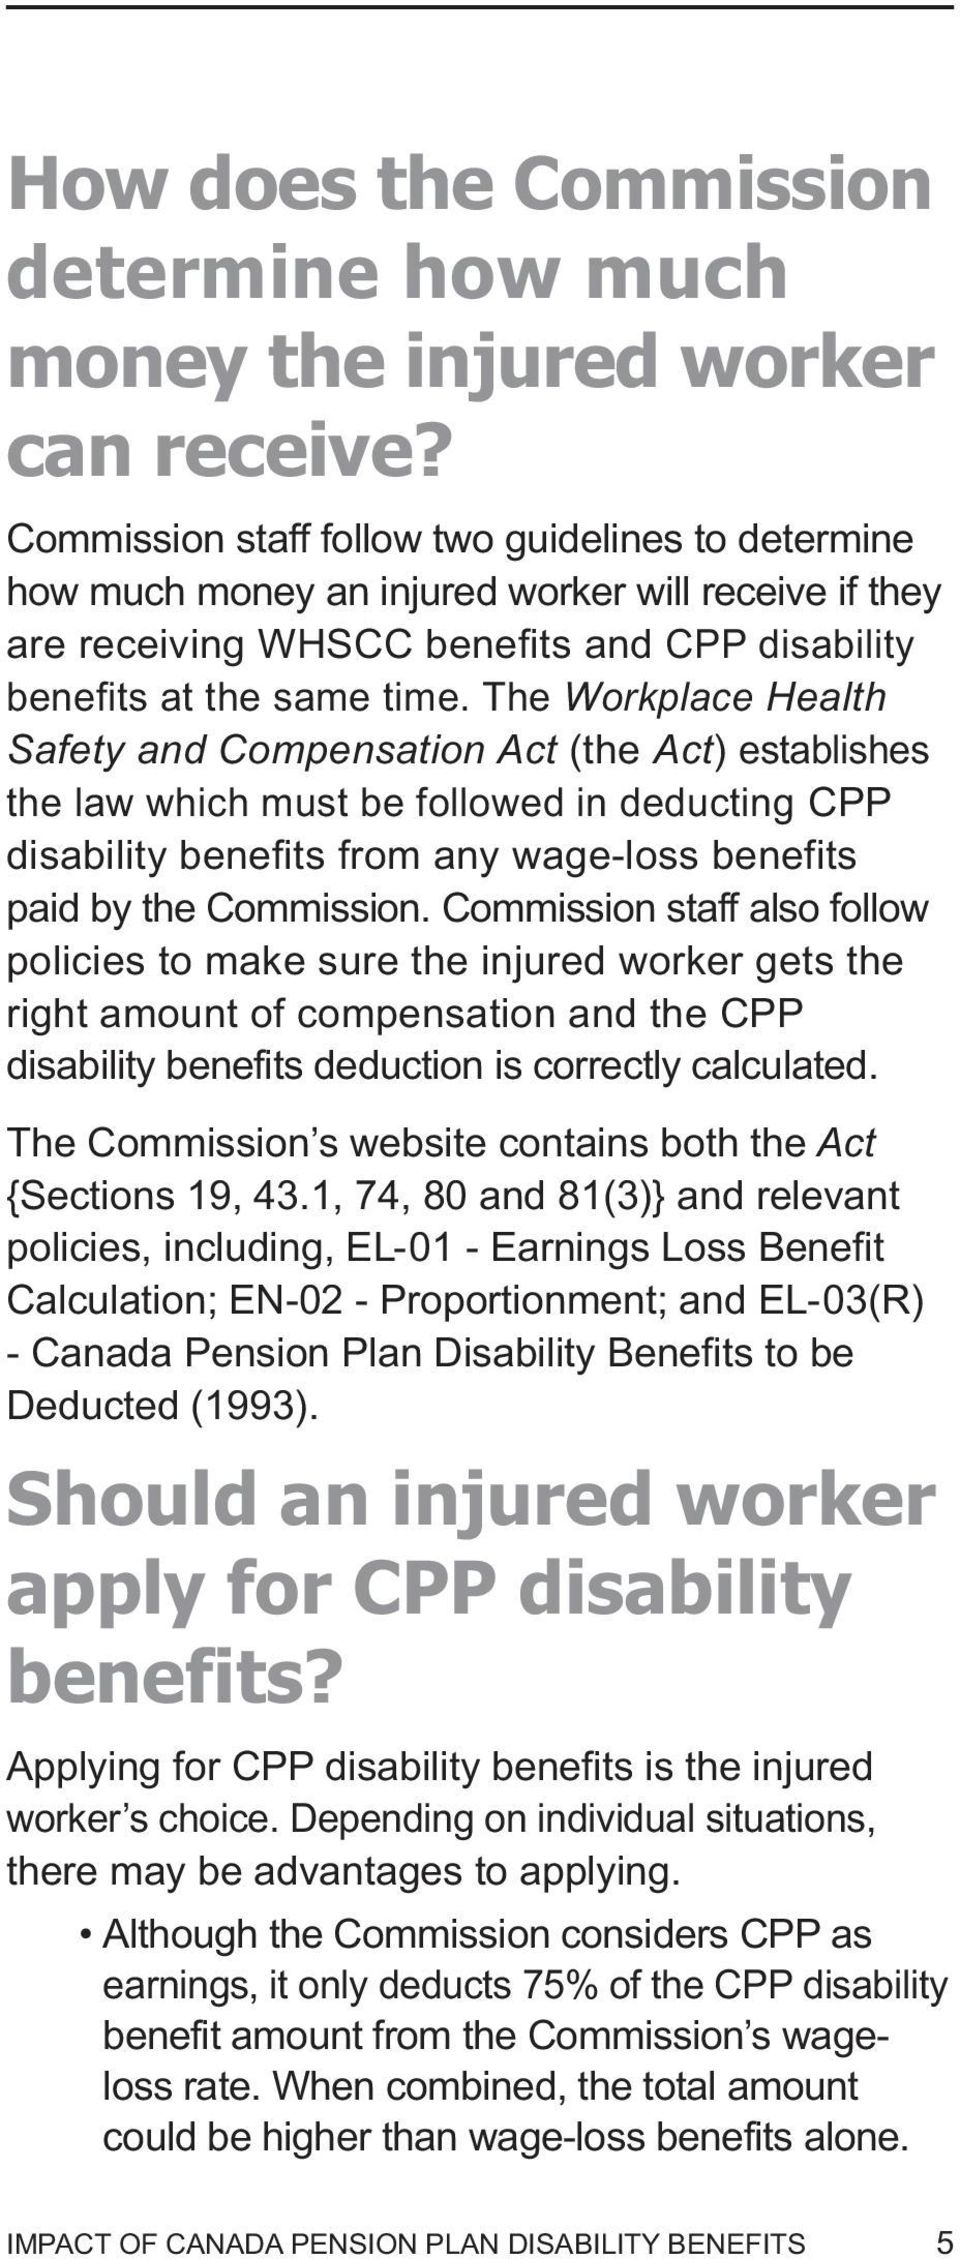 The Workplace Health Safety and Compensation Act (the Act) establishes the law which must be followed in deducting CPP disability benefits from any wage-loss benefits paid by the Commission.